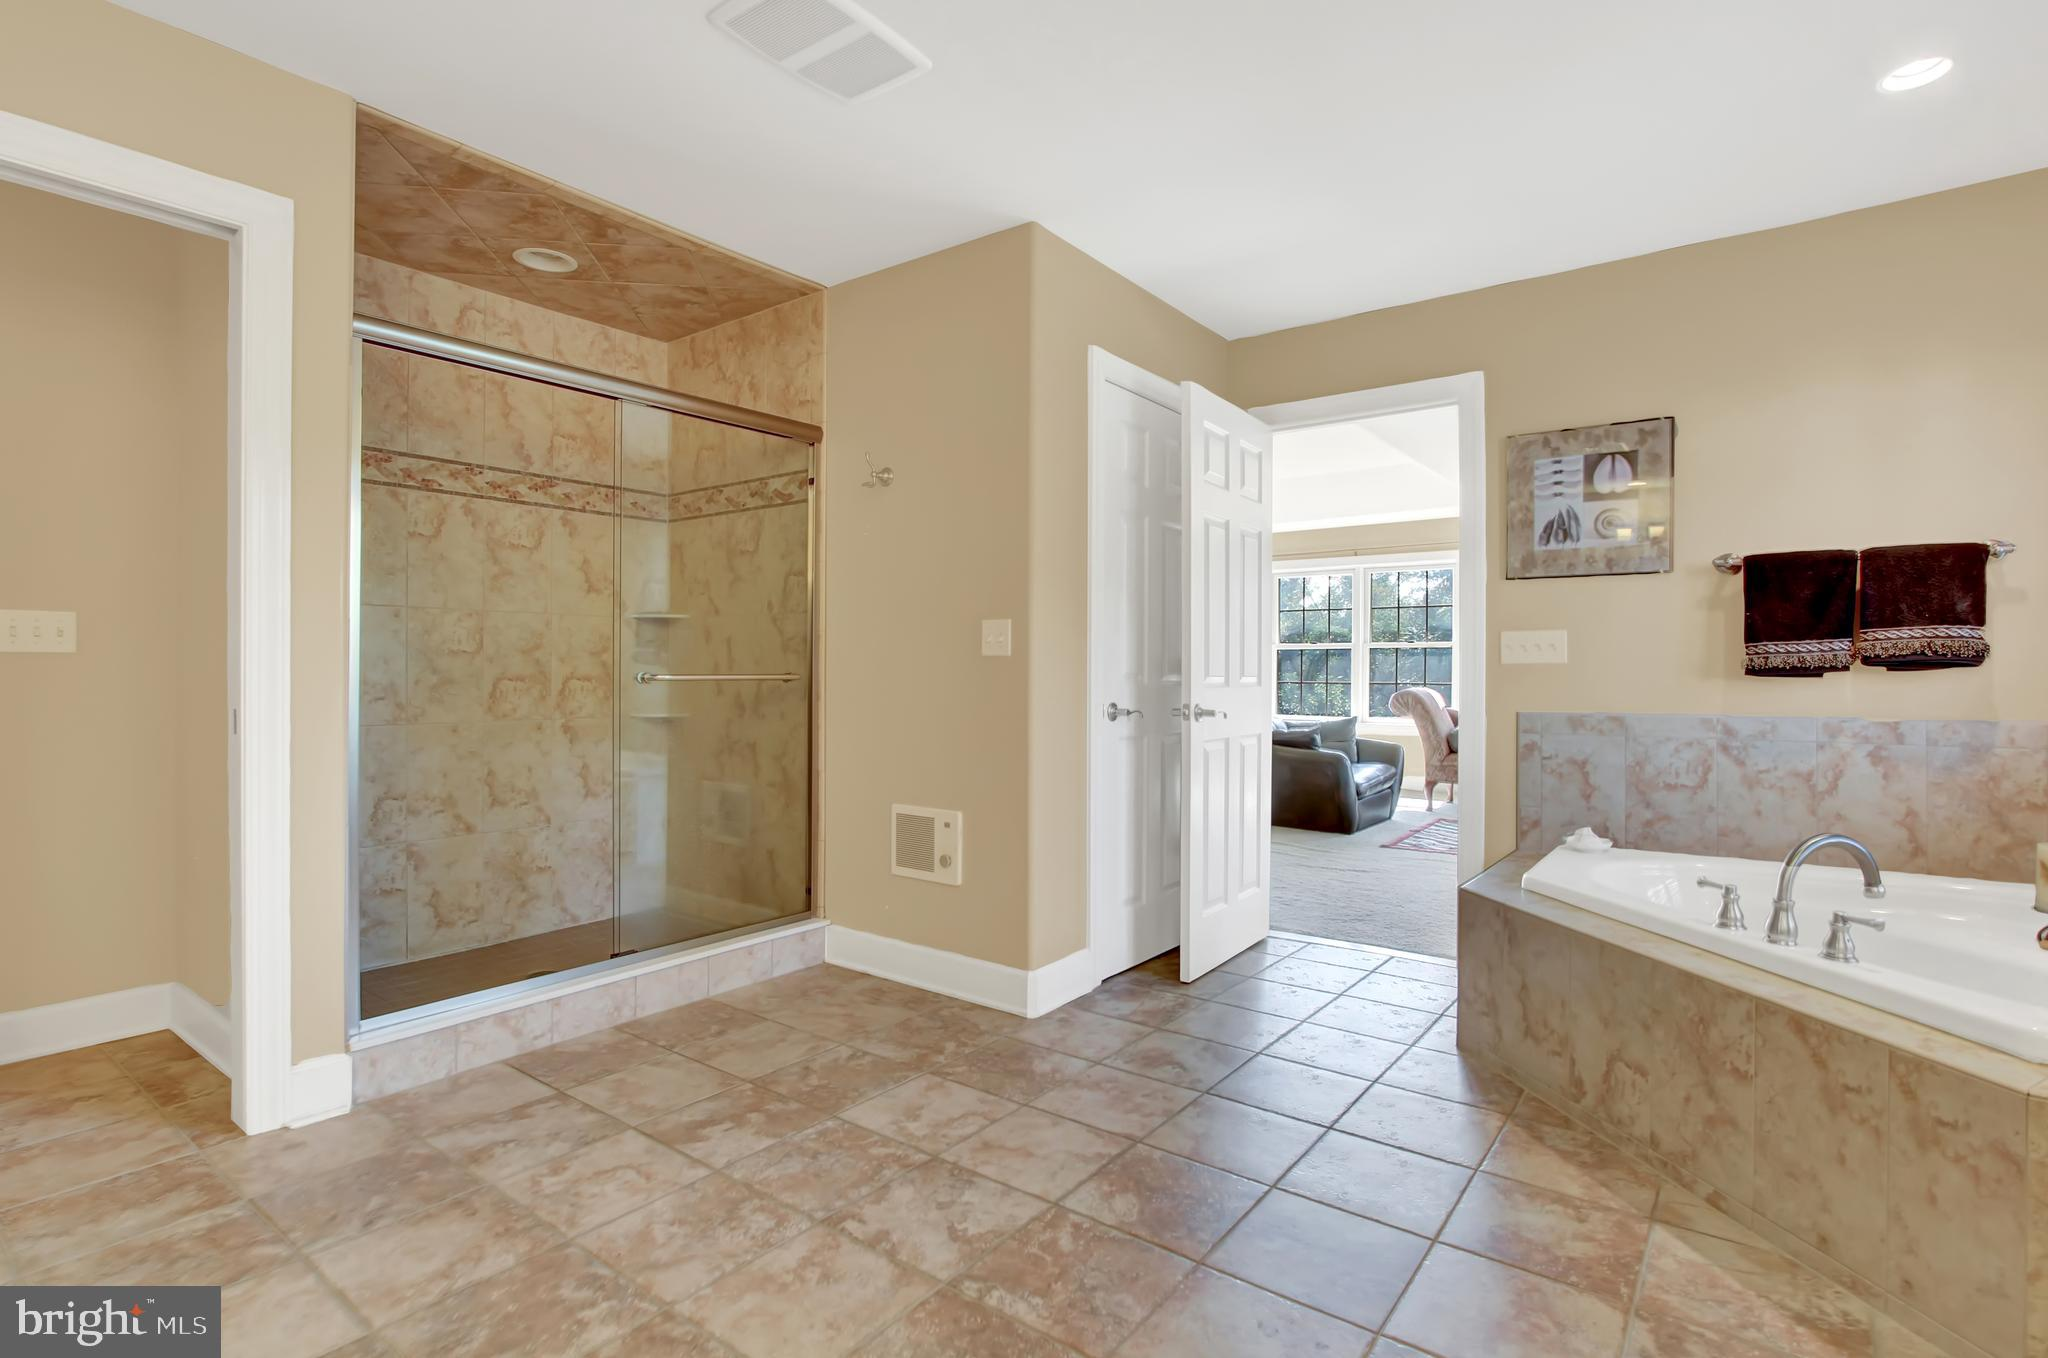 Tiled shower with jets, separate room for toilet